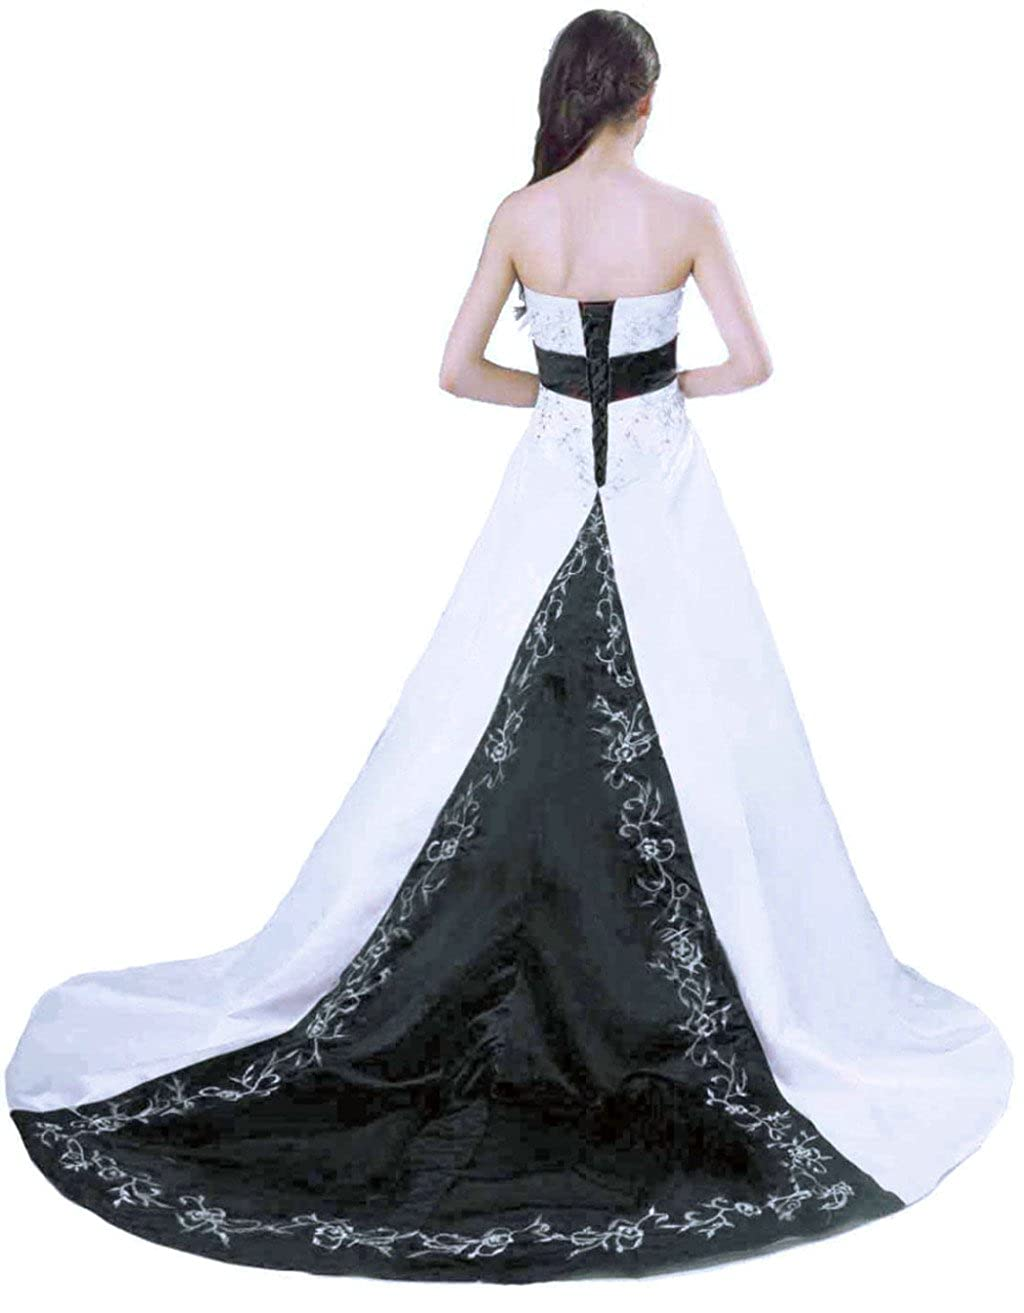 White   Black Vantexi Embroidery Satin Strapless Wedding Dress Bridal Gown